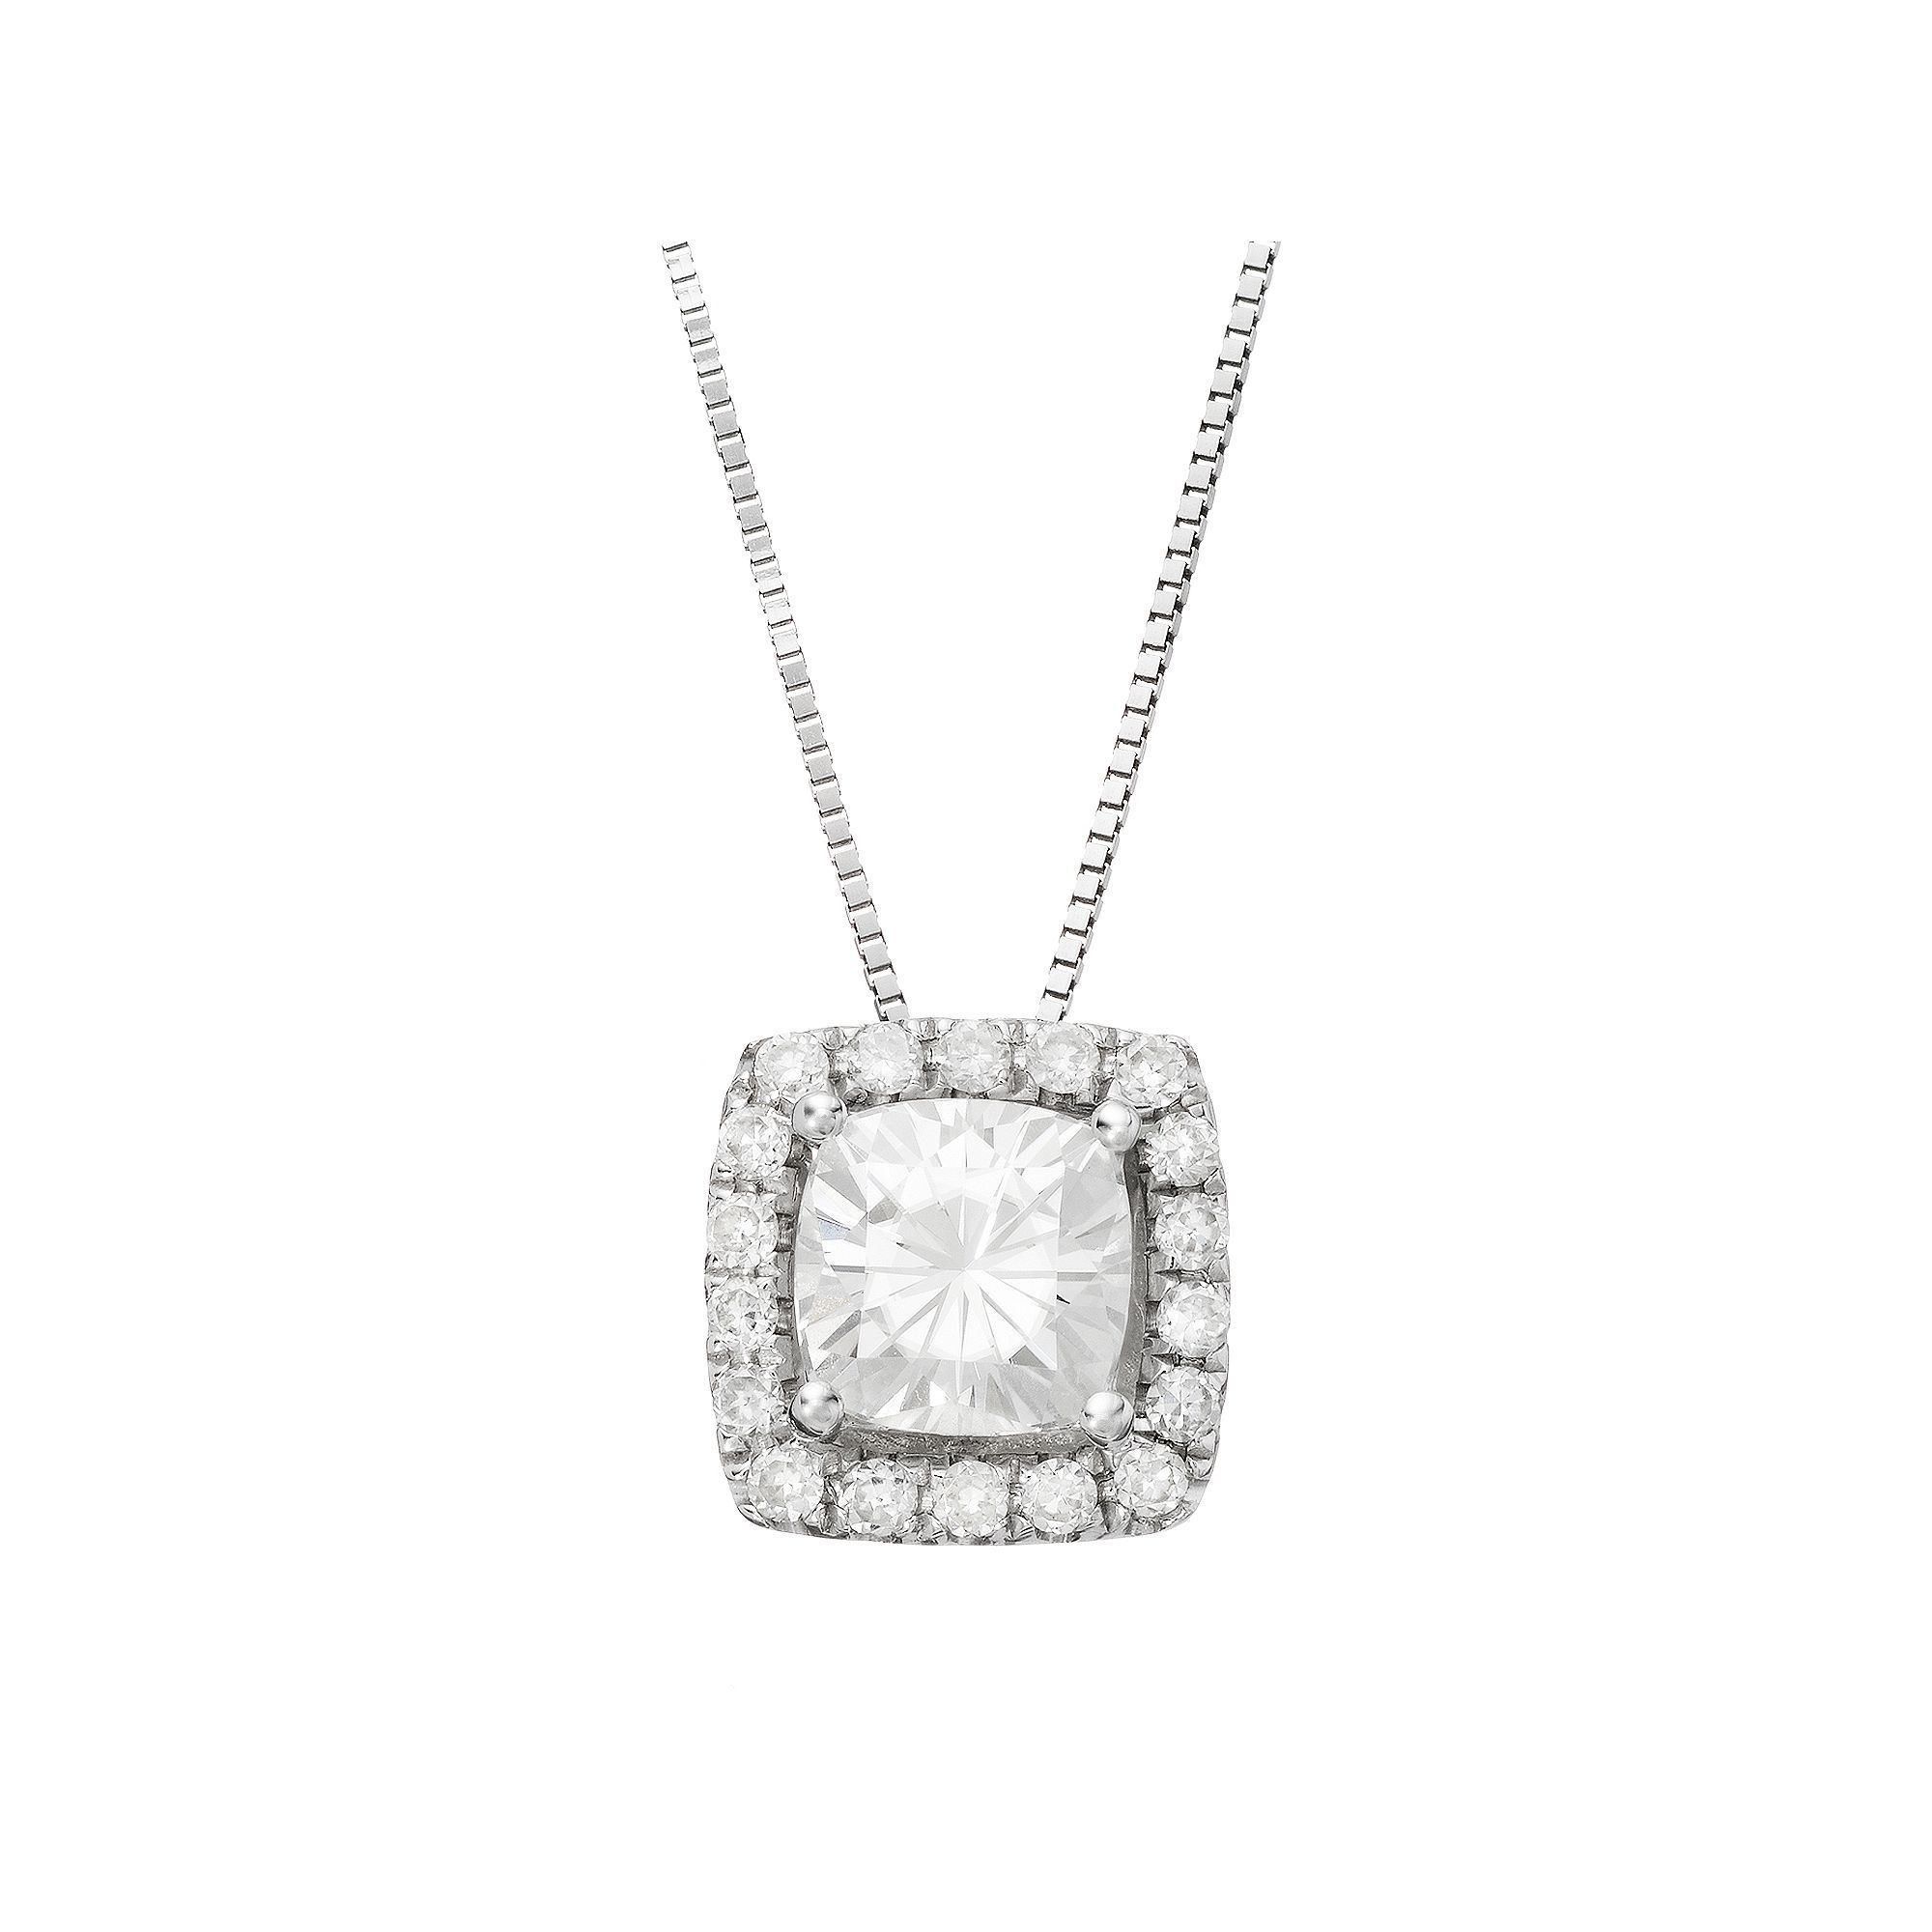 dc2889dc8ee Forever Brilliant 1 1 4 Carat T.W. Lab-Created Moissanite 14k White Gold  Halo Pendant Necklace